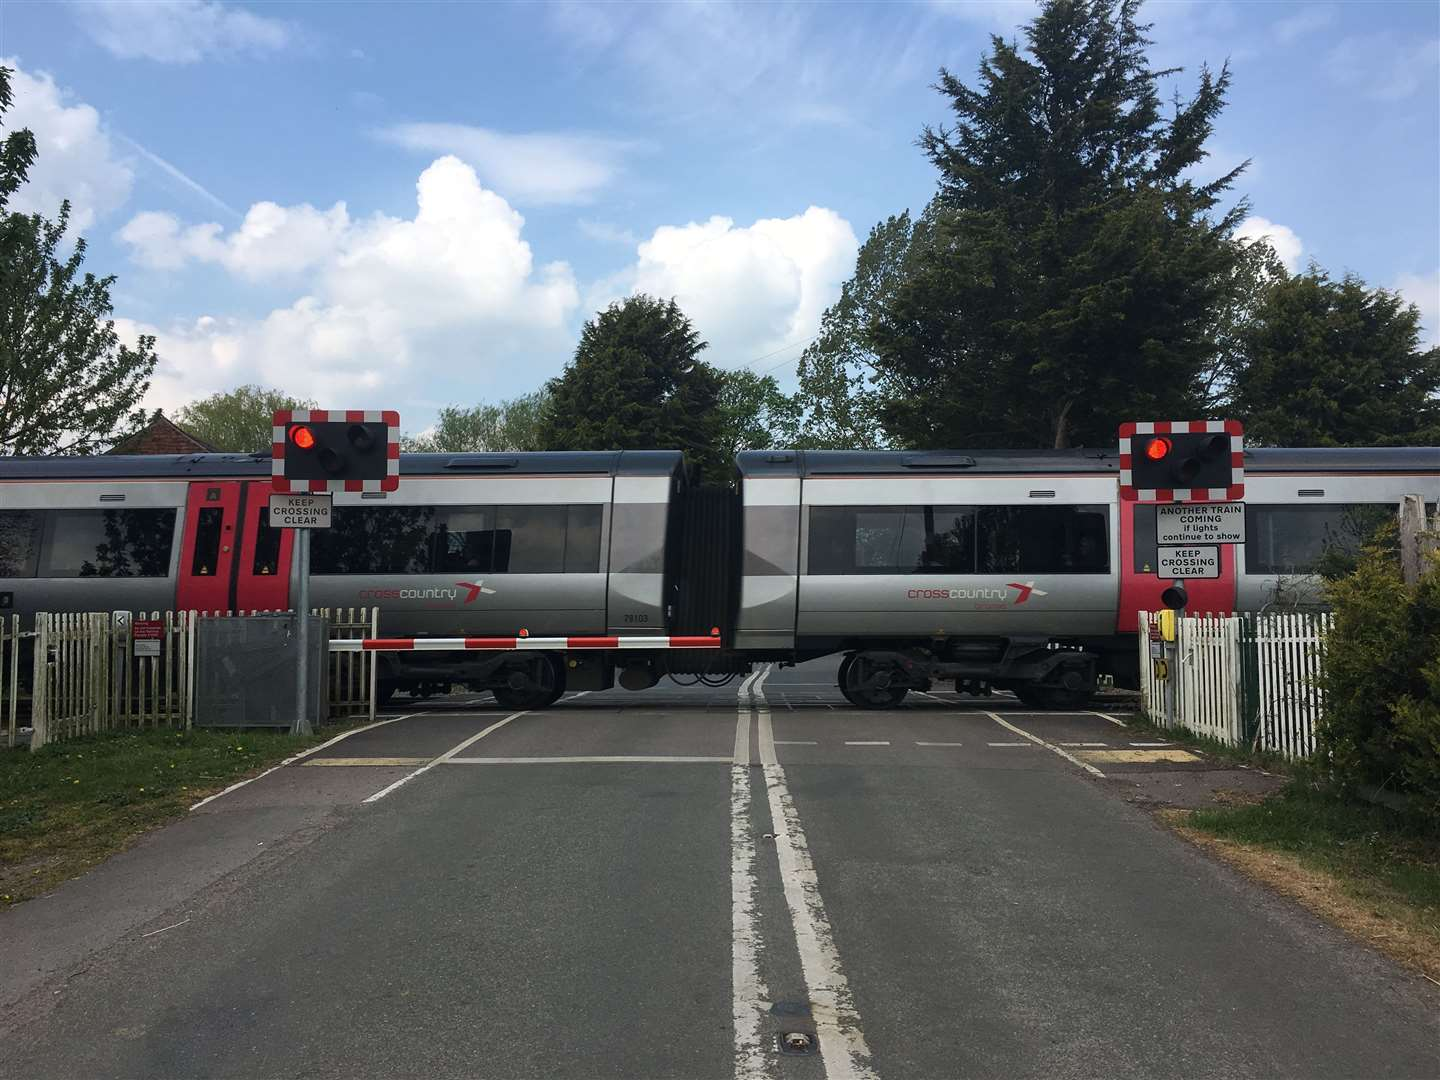 Network Rail is to replace the barrier gates at Swineshead level crossing over the Easter holidays.